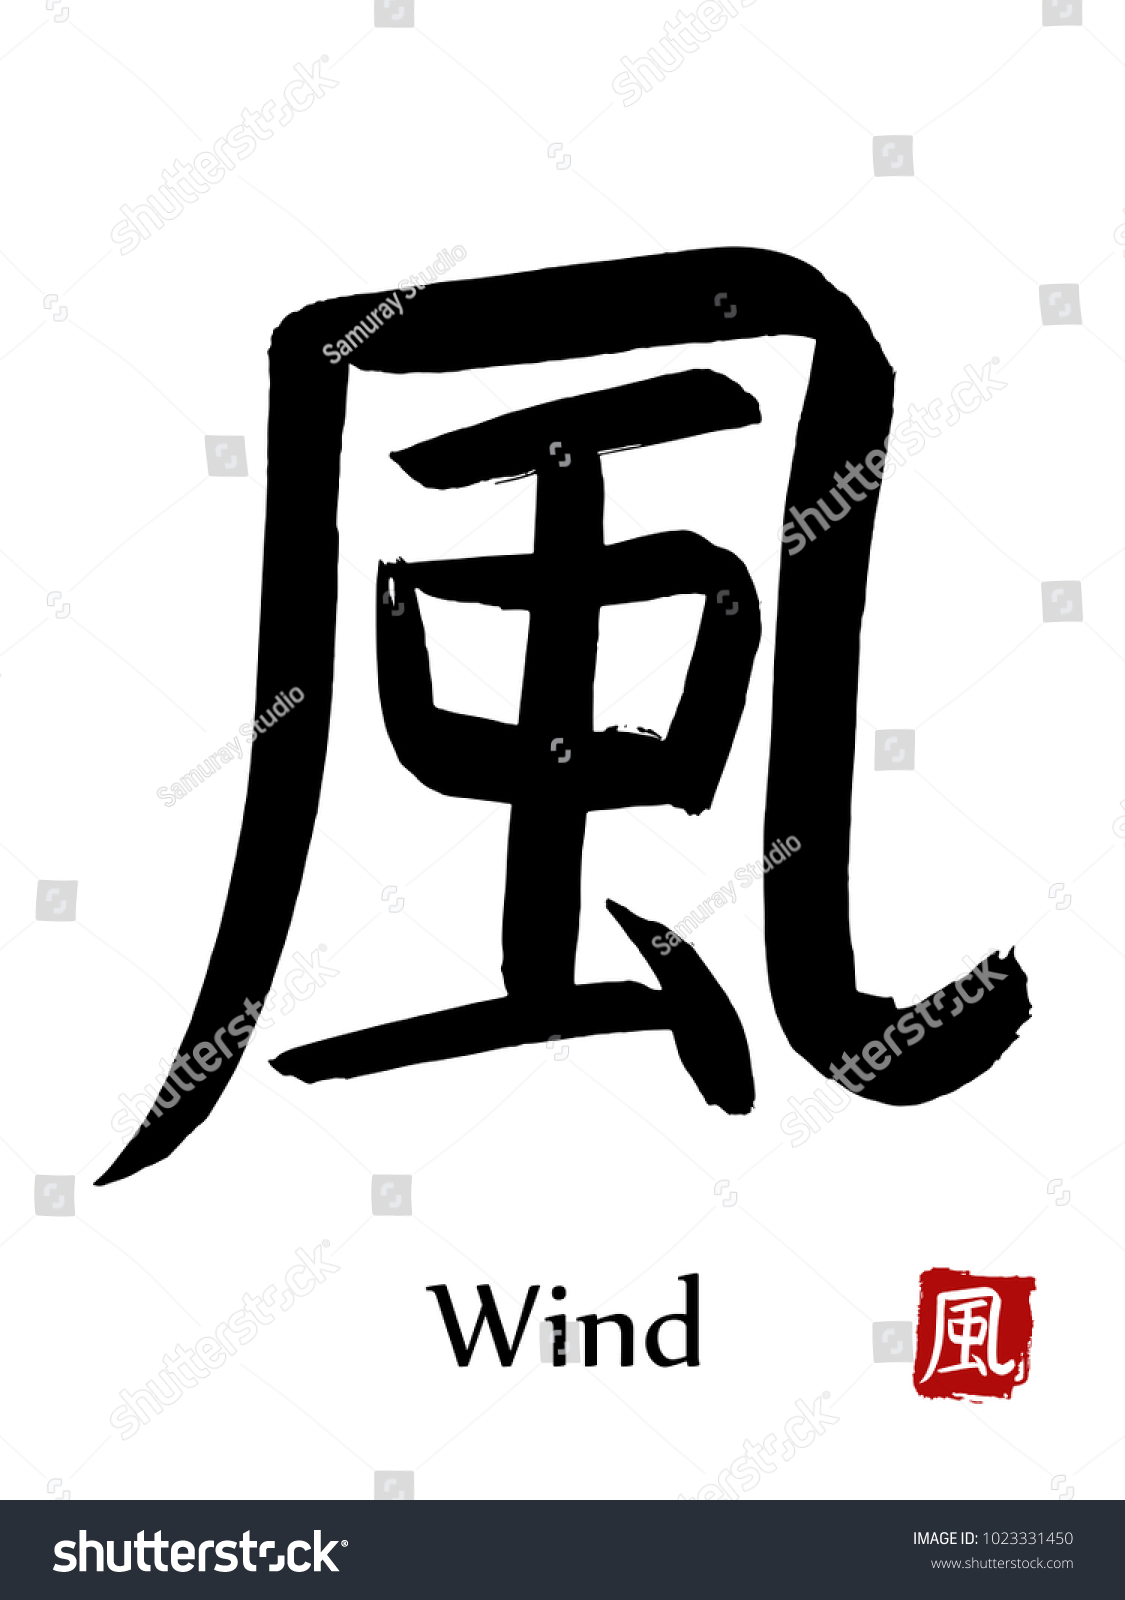 Redbox stock symbol choice image symbol and sign ideas chinese symbol for wind gallery symbol and sign ideas hand drawn hieroglyph translate wind vector stock buycottarizona